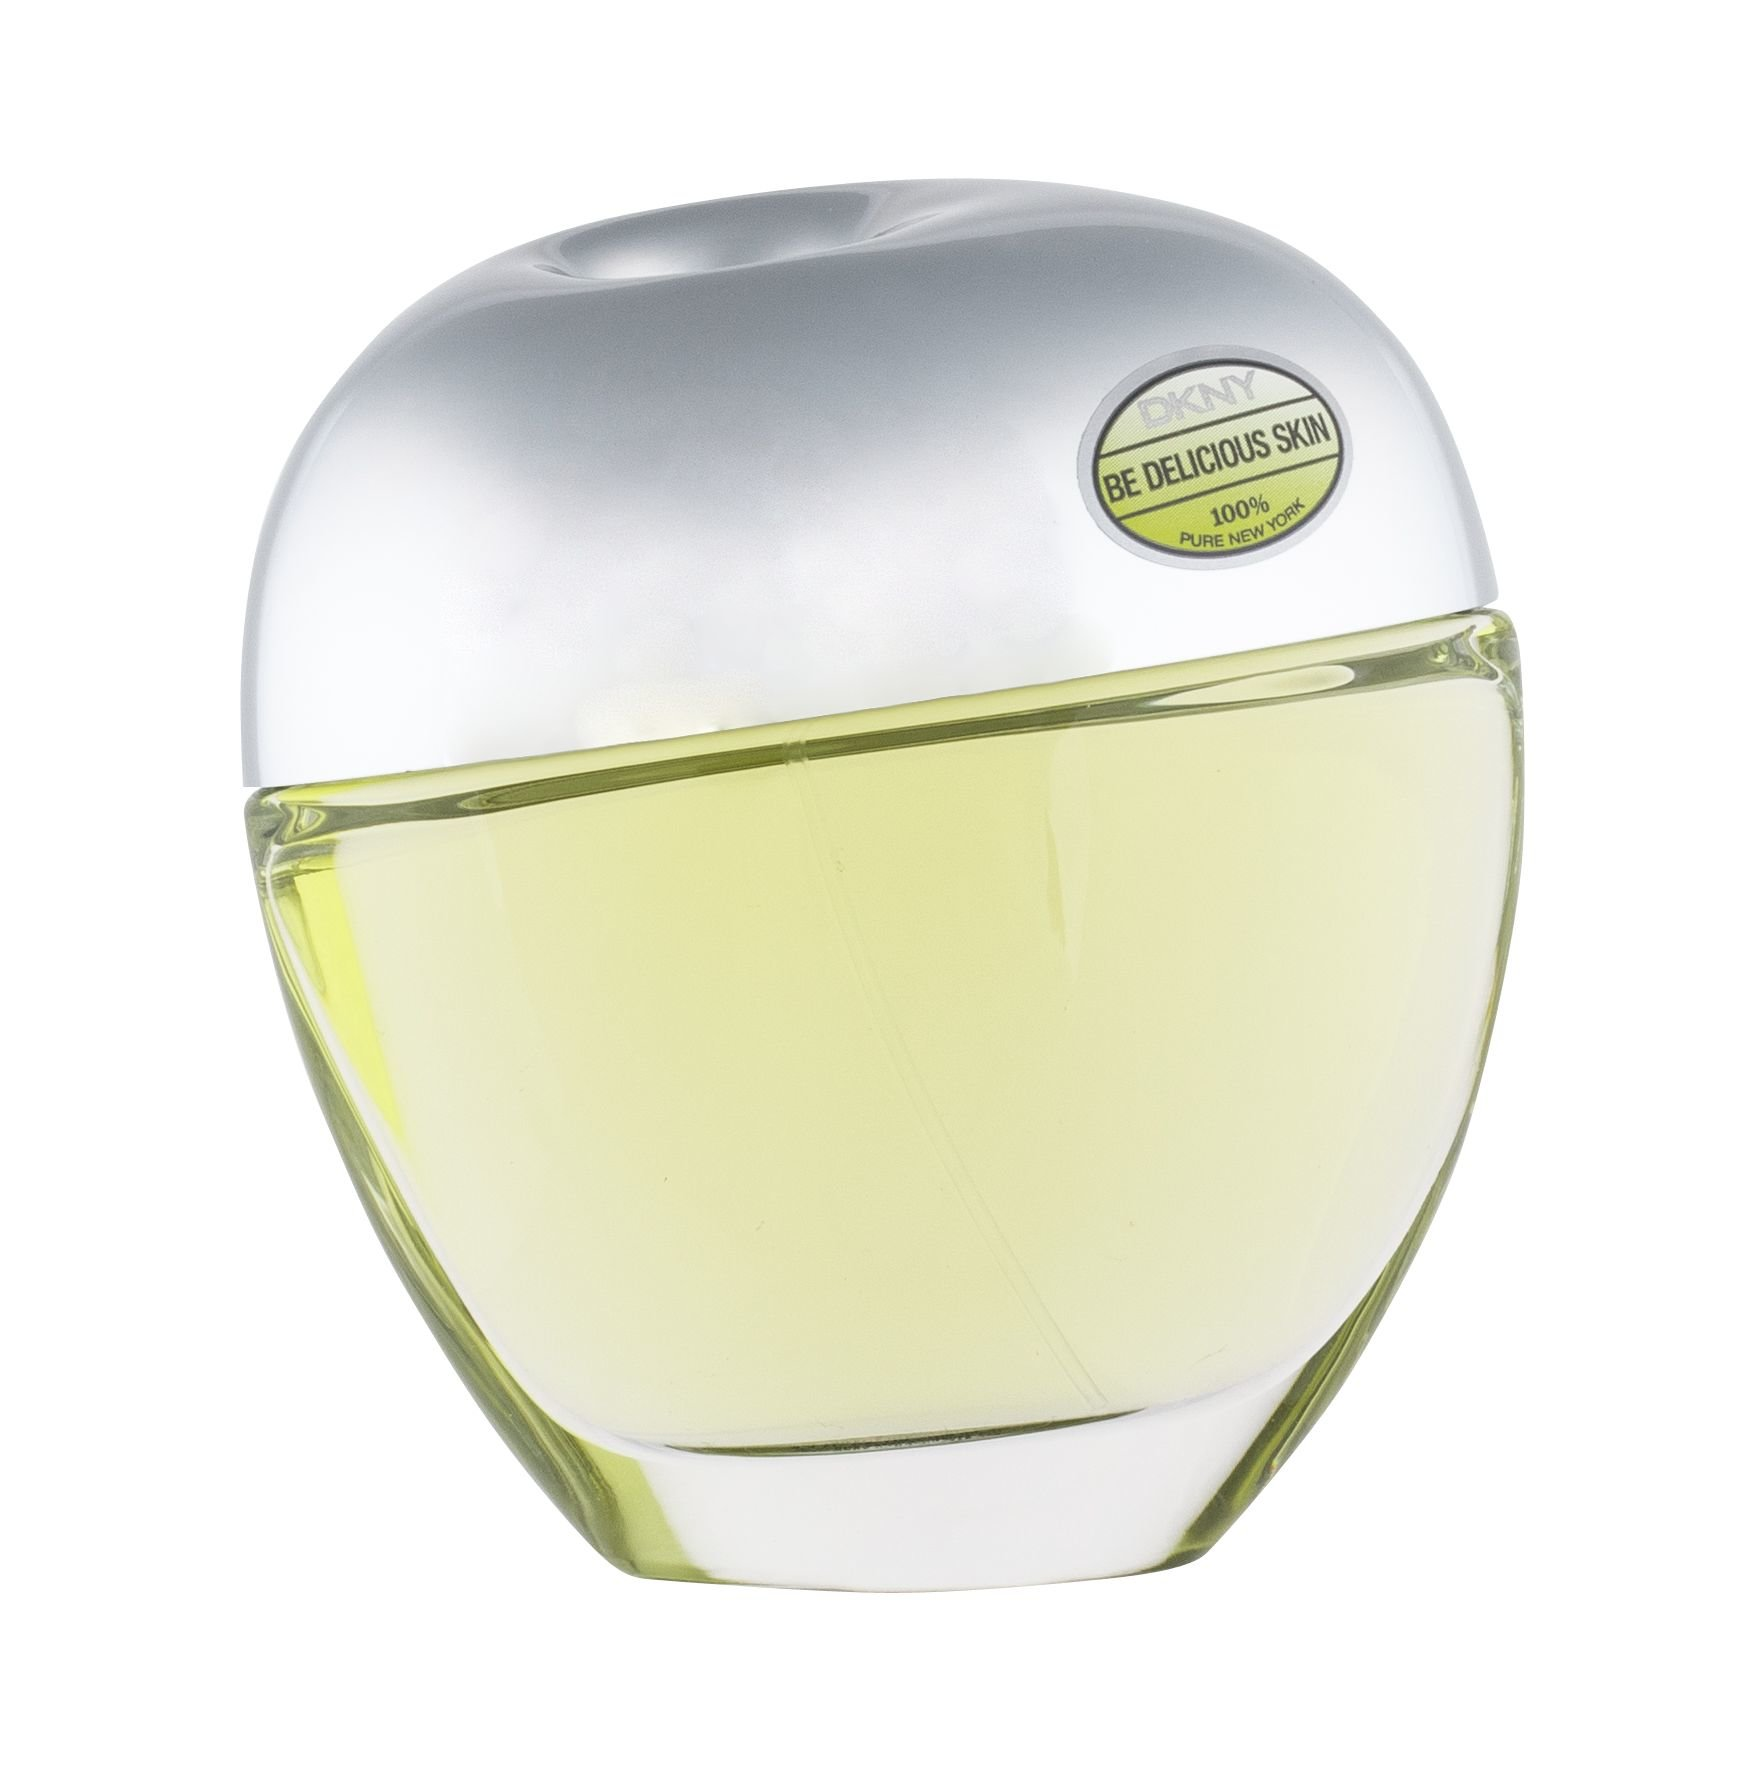 DKNY DKNY Be Delicious Skin EDT 100ml